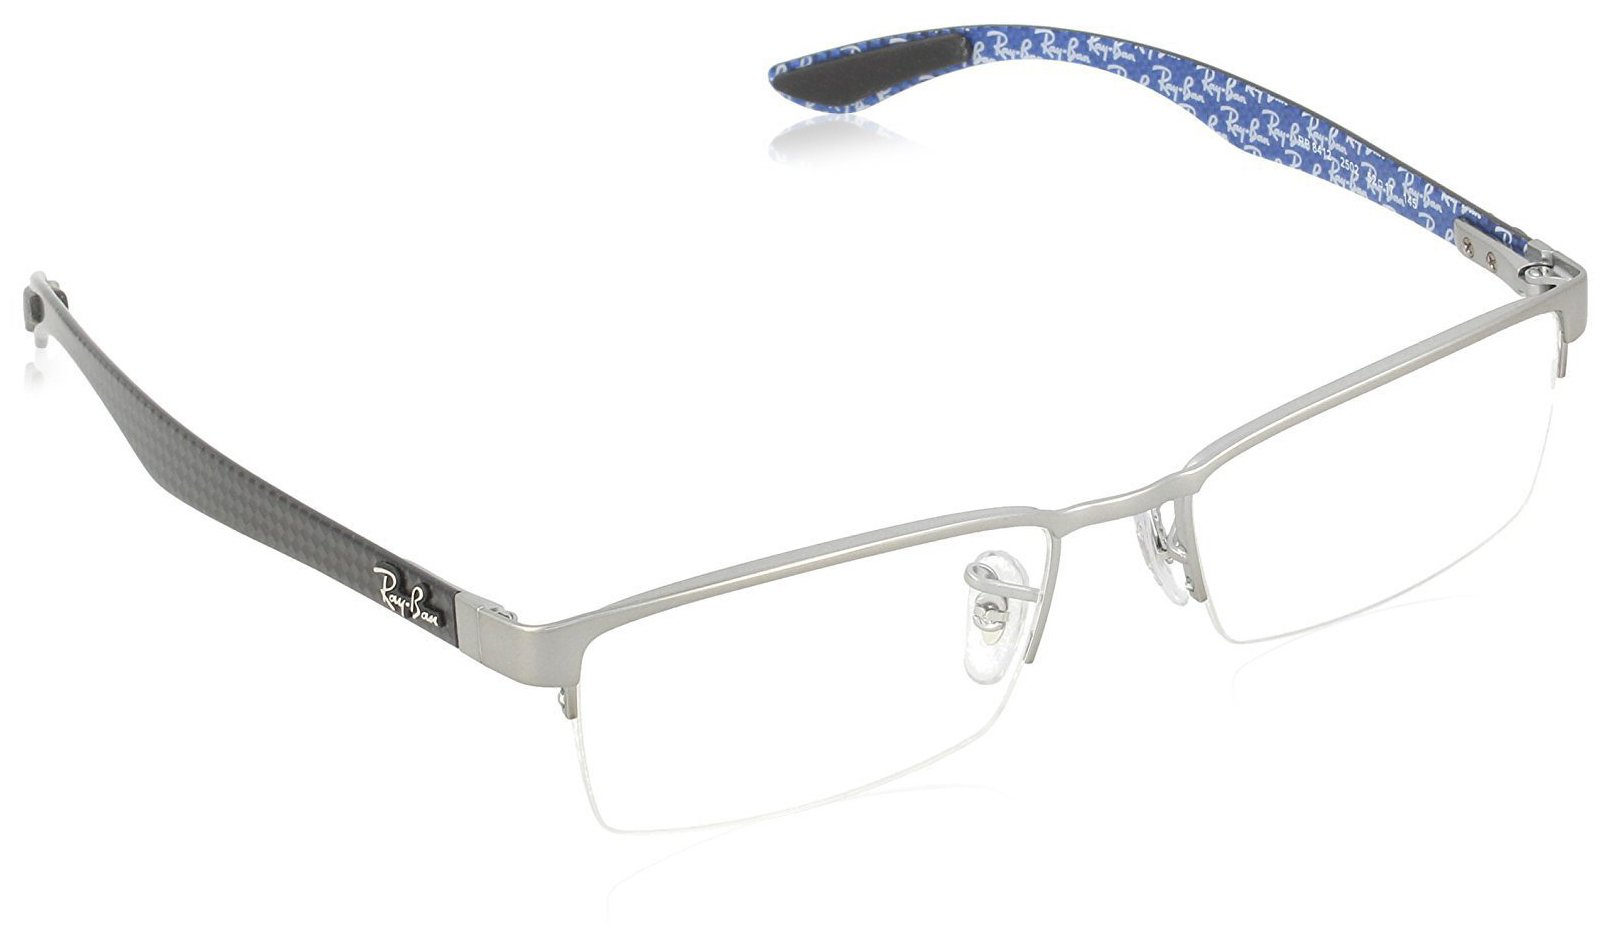 Ray-Ban Men's 0rx8412 No Polarization Rectangular Prescription Eyewear Frame Gunmetal 52 mm